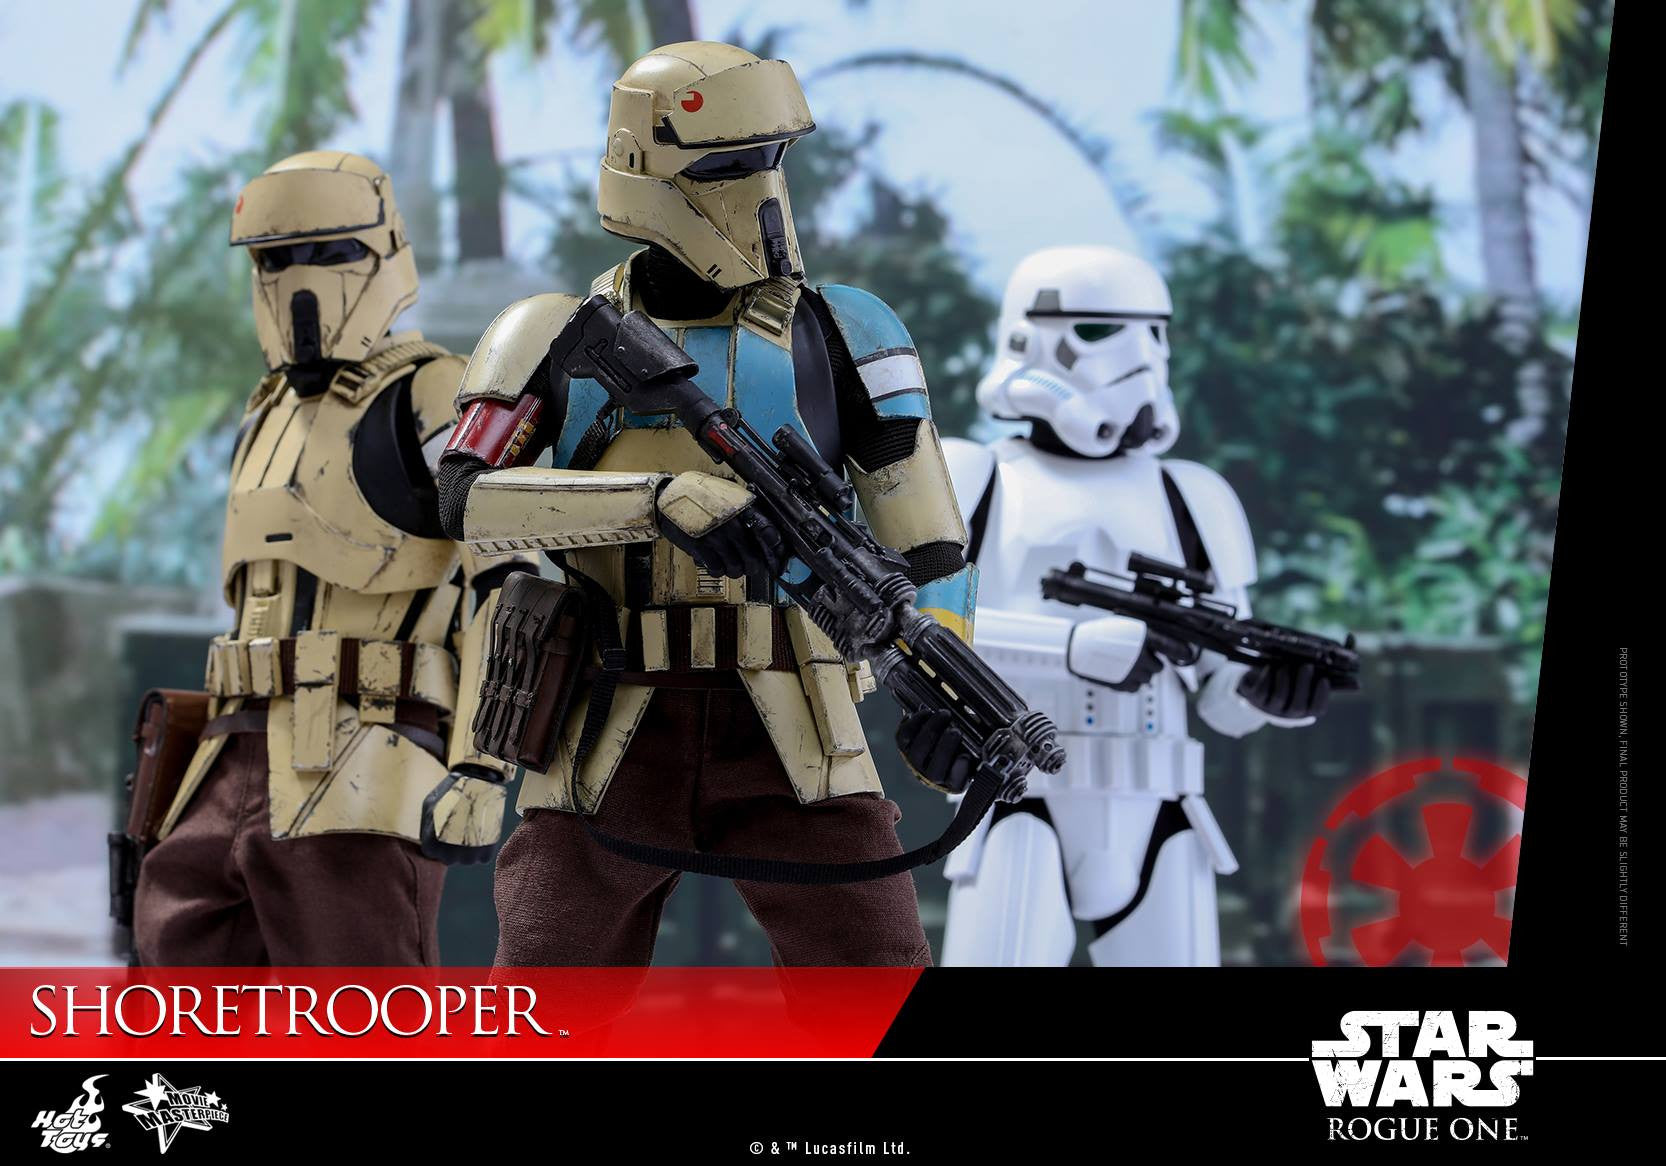 Hot Toys - MMS389 - Rogue One: A Star Wars Story - Shoretrooper - Marvelous Toys - 5